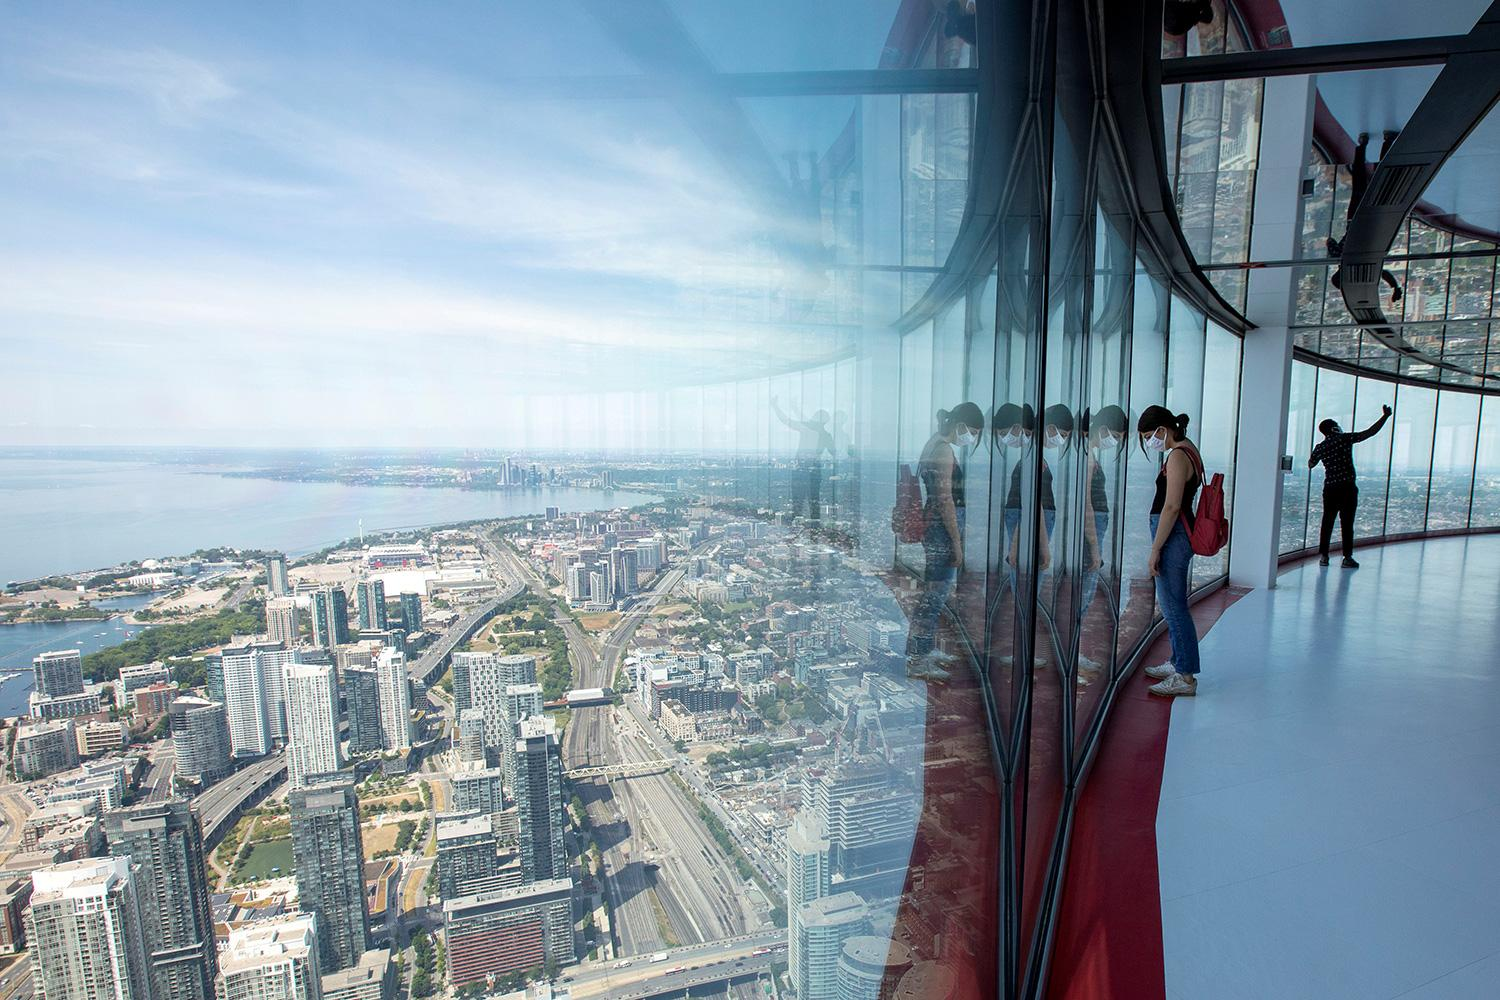 Bird's eye view: visitors take in a panoramic scene of the city of Toronto, Canada, from the 553 meters (1815 feet) high CN Tower, which just reopened after coronavirus restrictions on July 15, 2020. The photo shows a woman wearing a mask looking out from the skyview of the tall building with the Toronto cityscape beneath her. REUTERS/Carlos Osorio